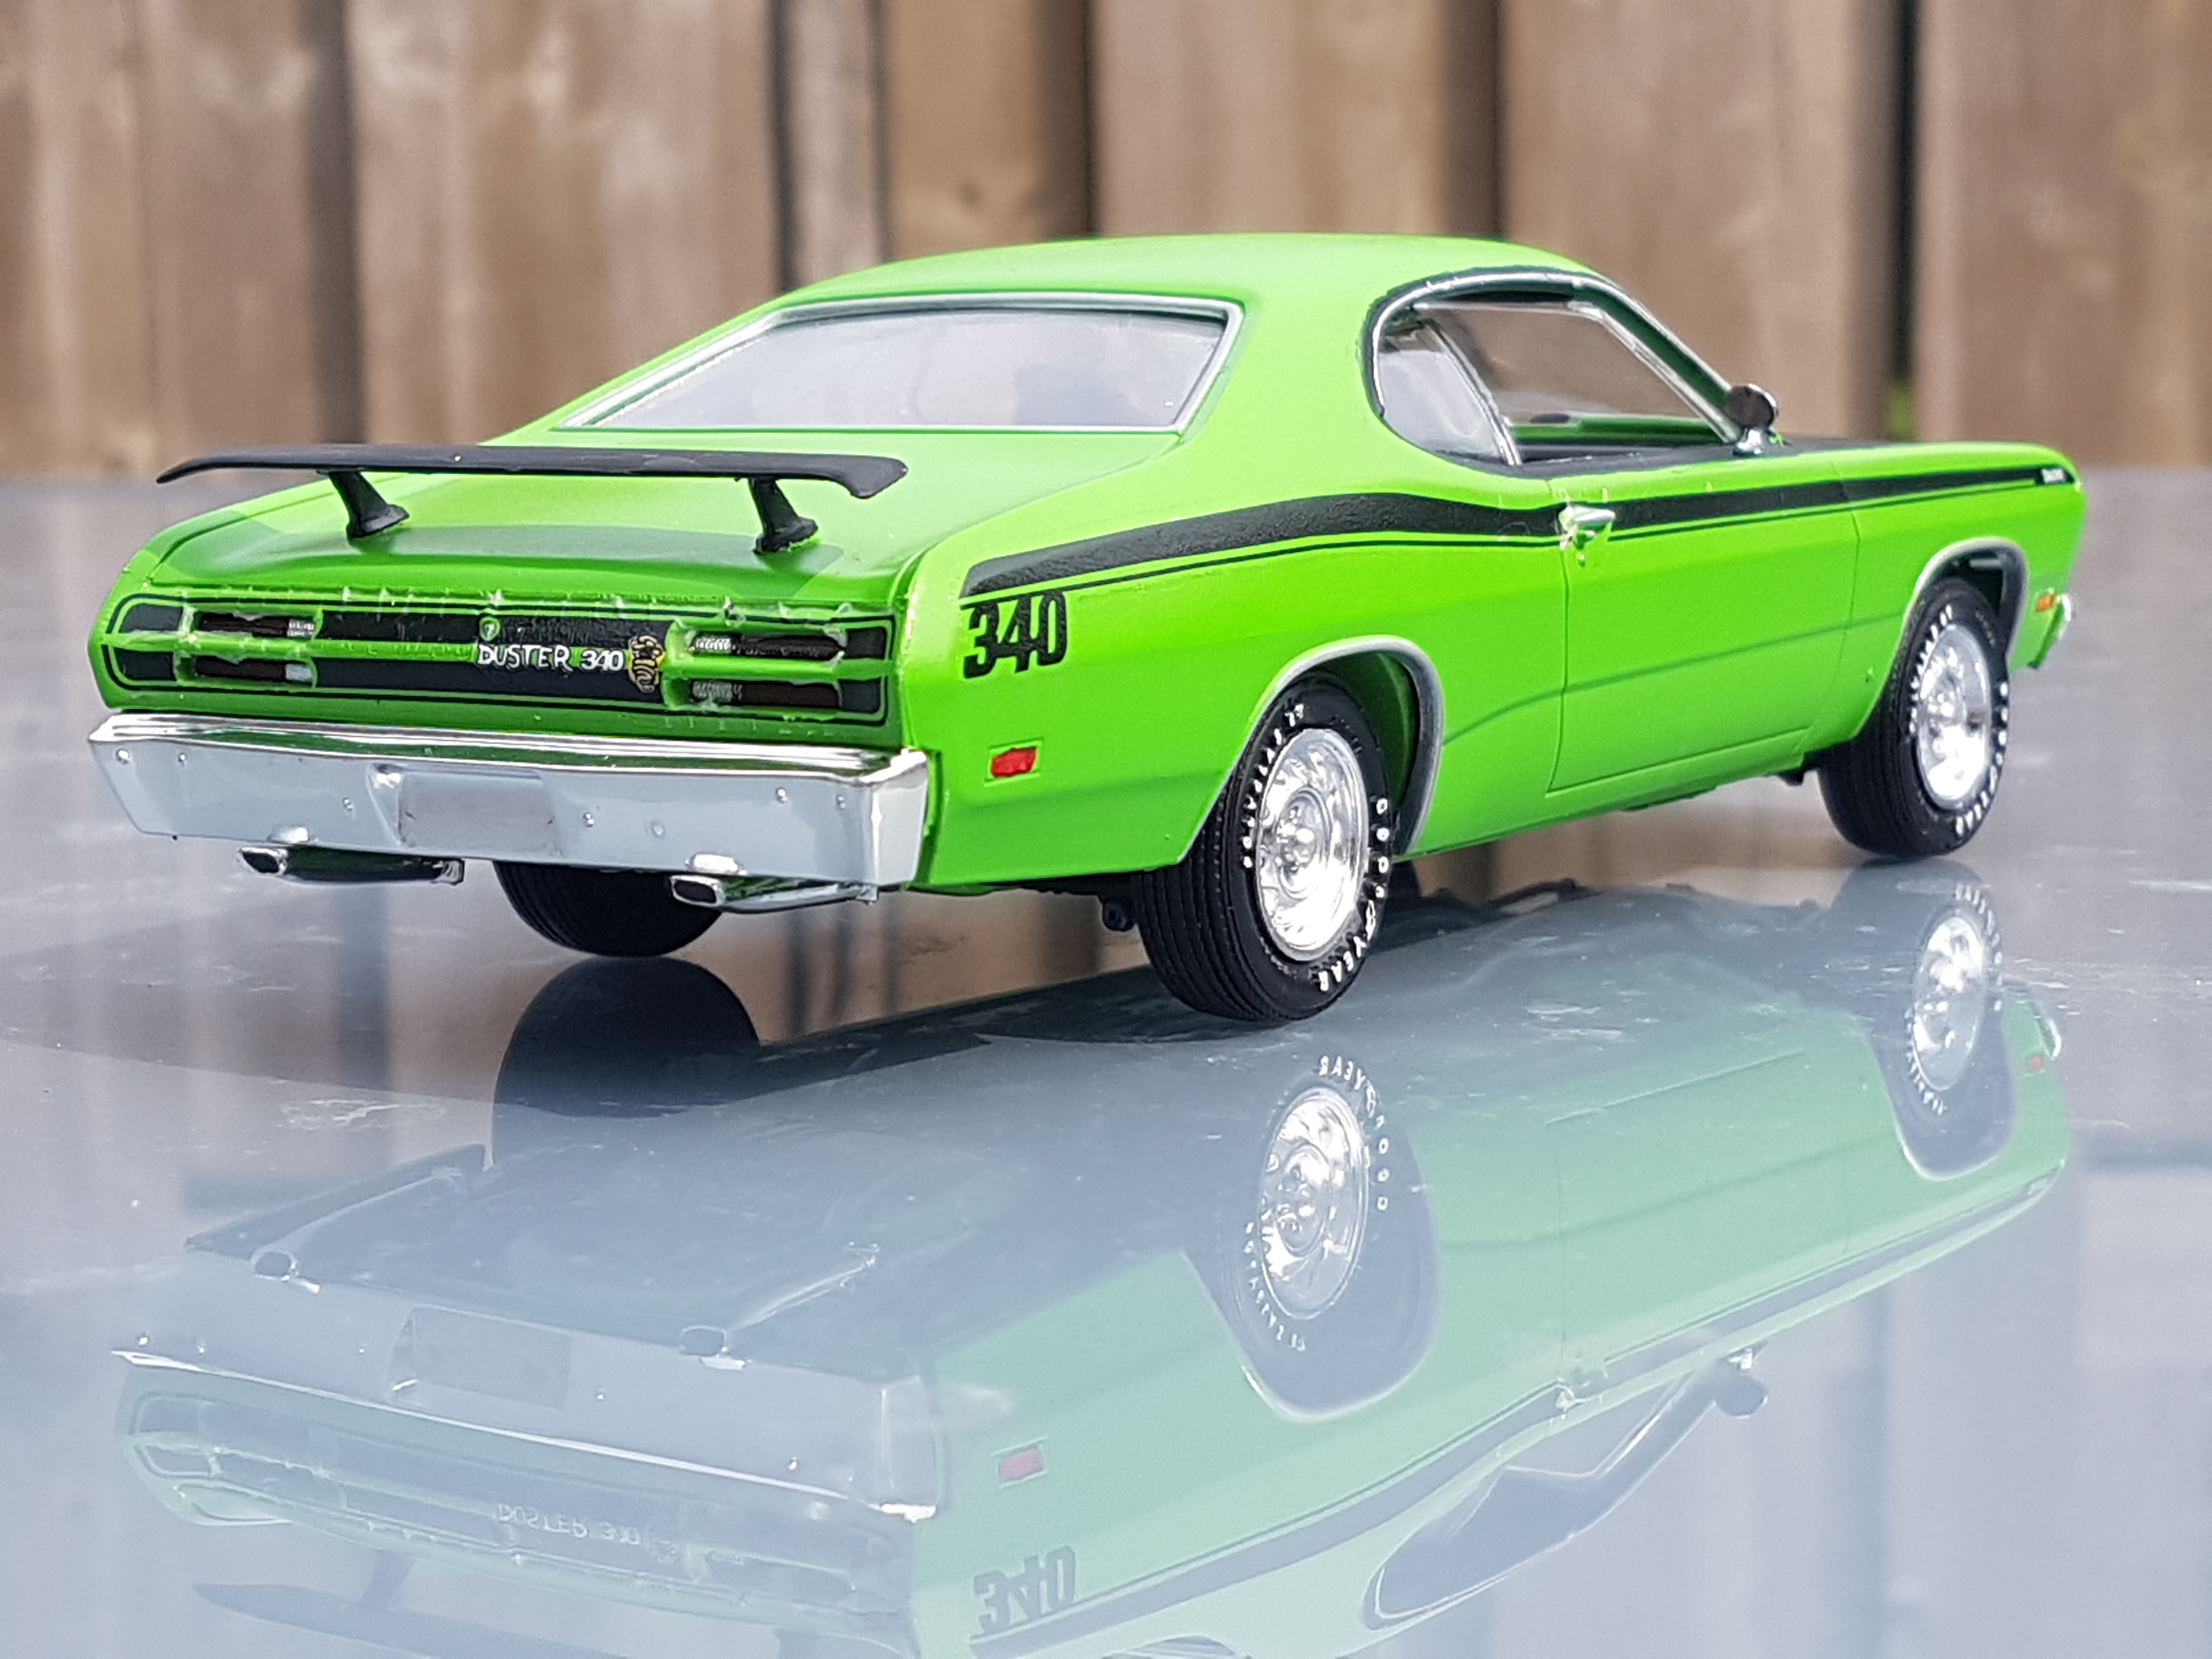 1971plymouthduster340-12.jpg